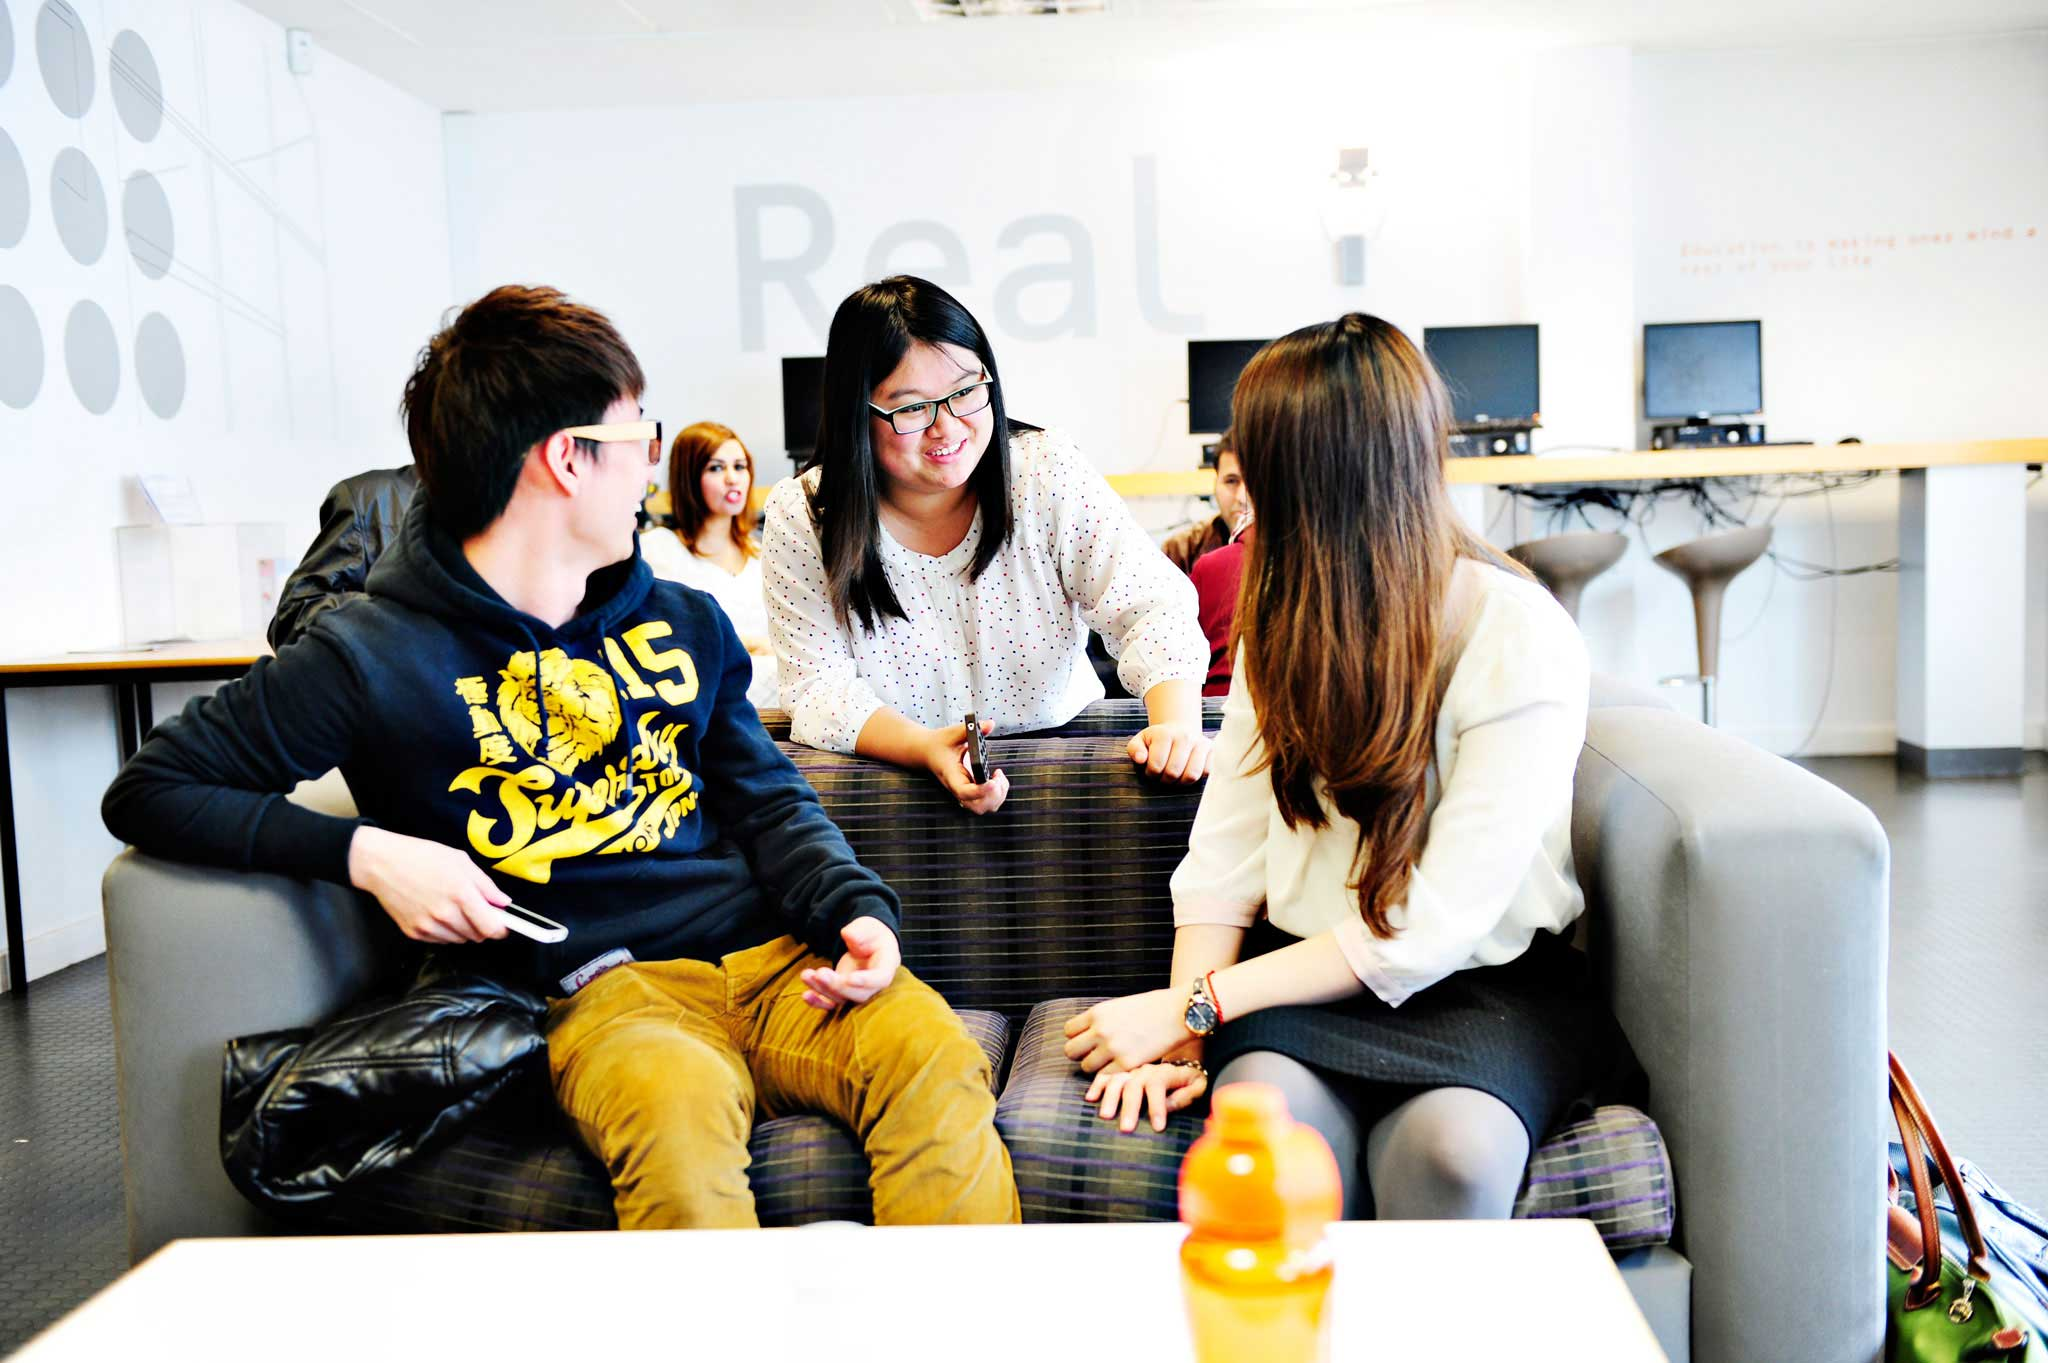 Socialise with friends in the Real Study Cafe